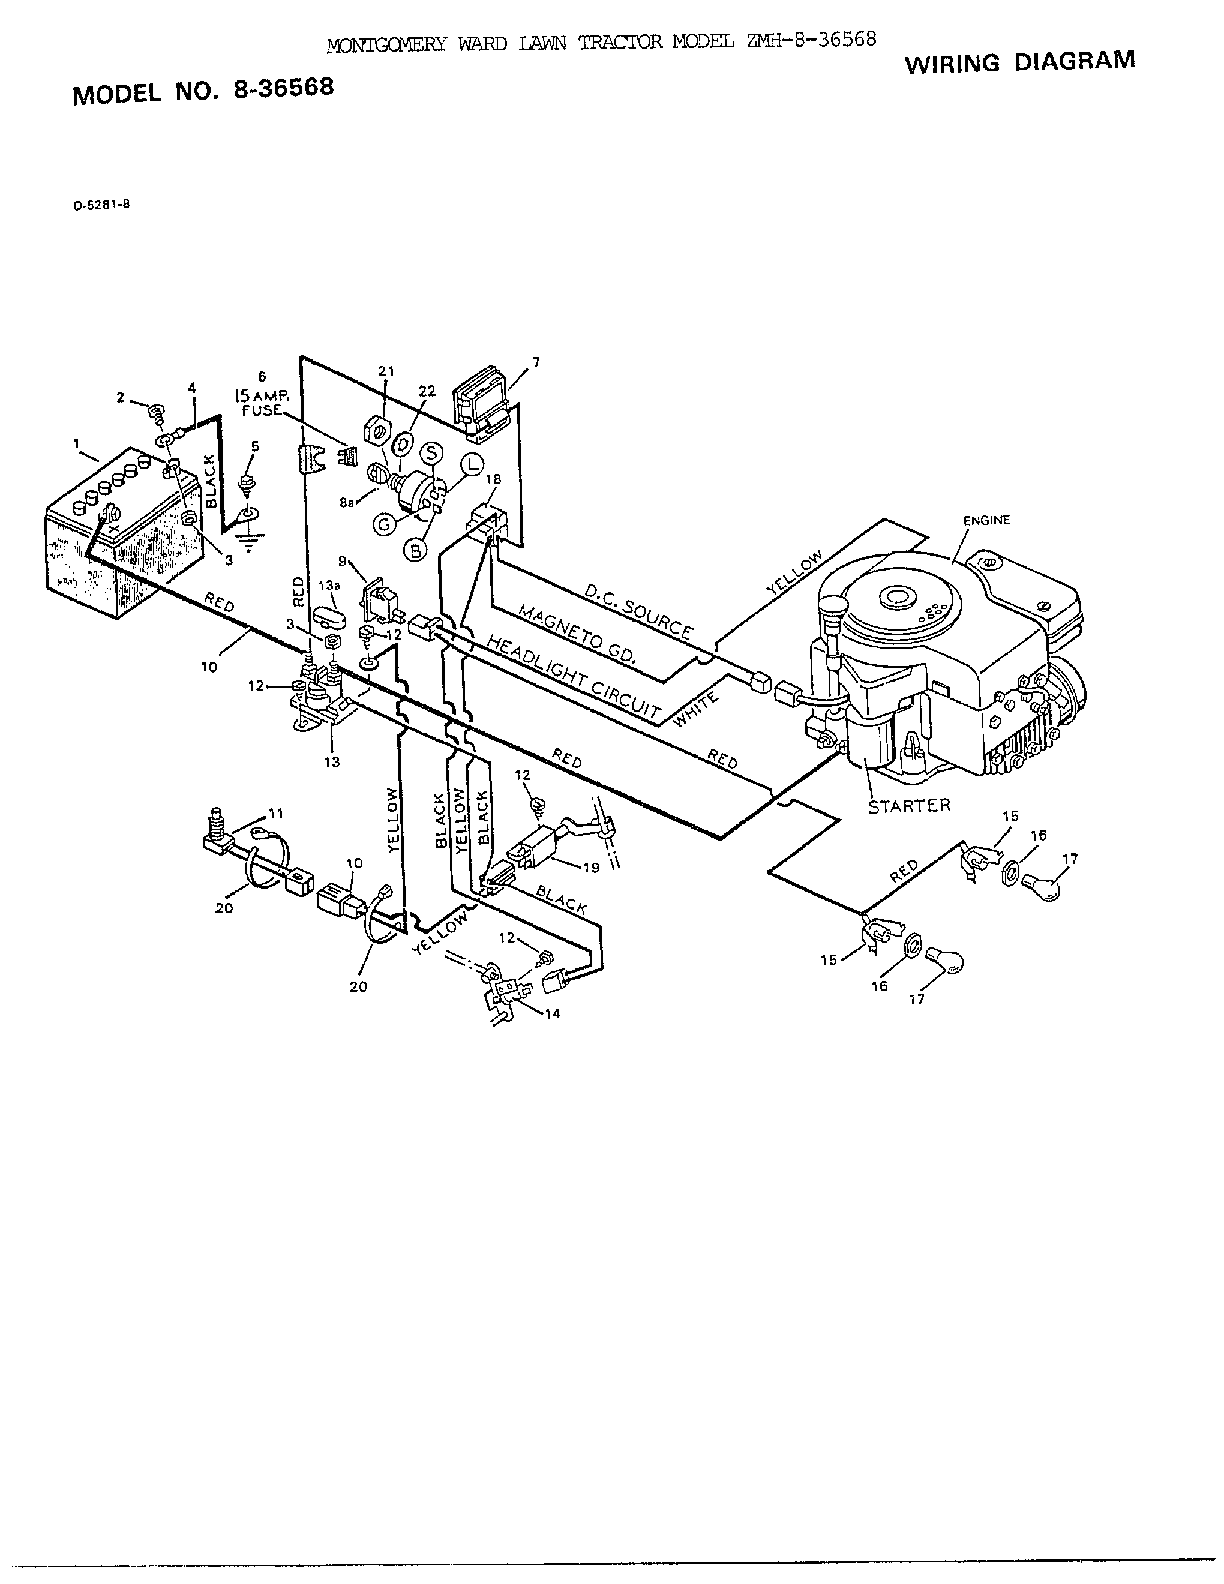 hight resolution of murray lawn mower engine diagram wiring diagram sort looking for murray model 8 36568 front engine